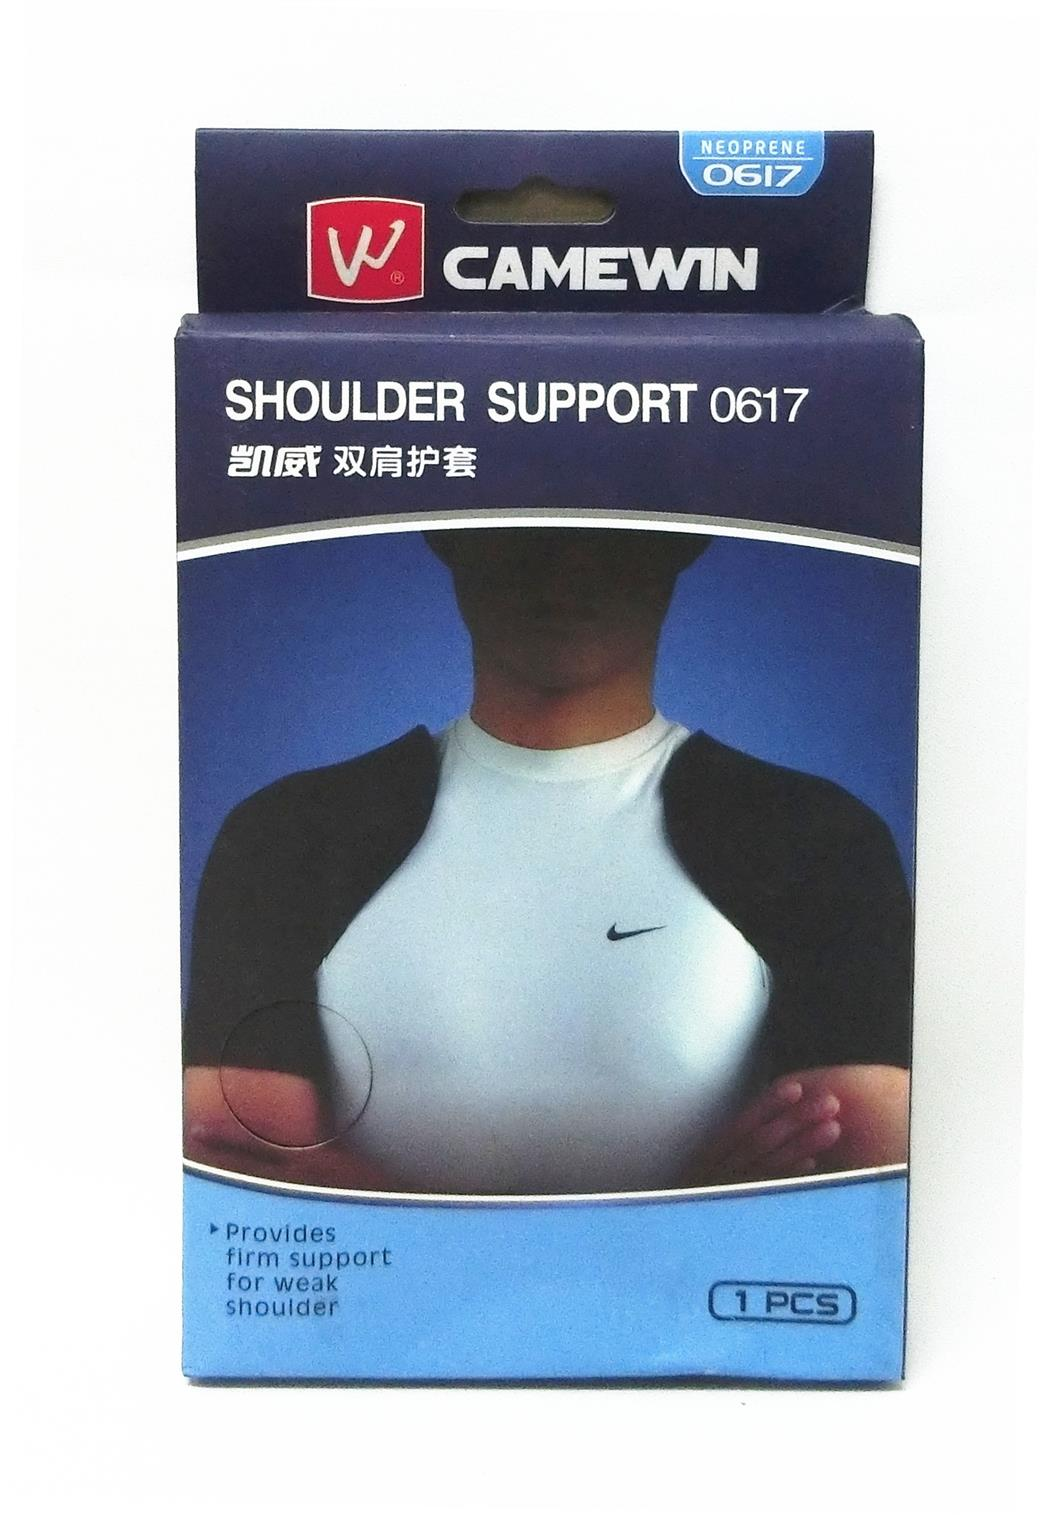 Camewin Shoulder Support 0617 - Size M